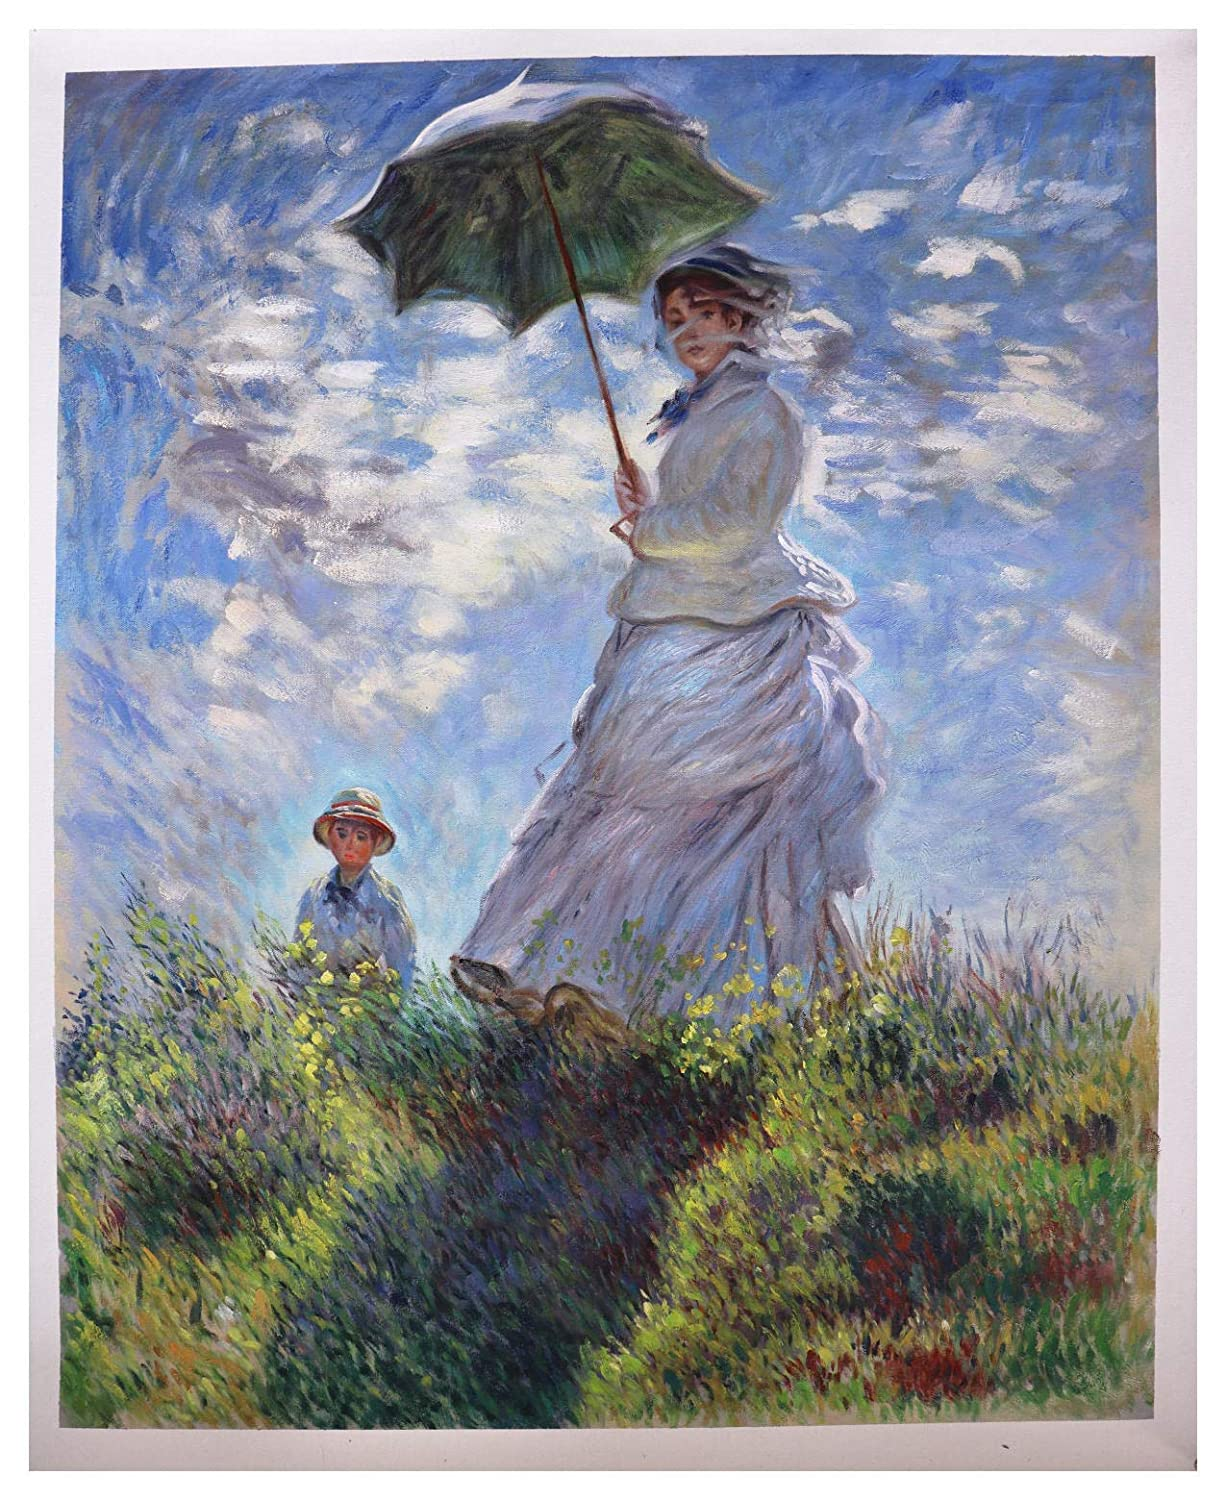 Amazon.com: Woman with a Parasol - Madame Monet and Her Son ...